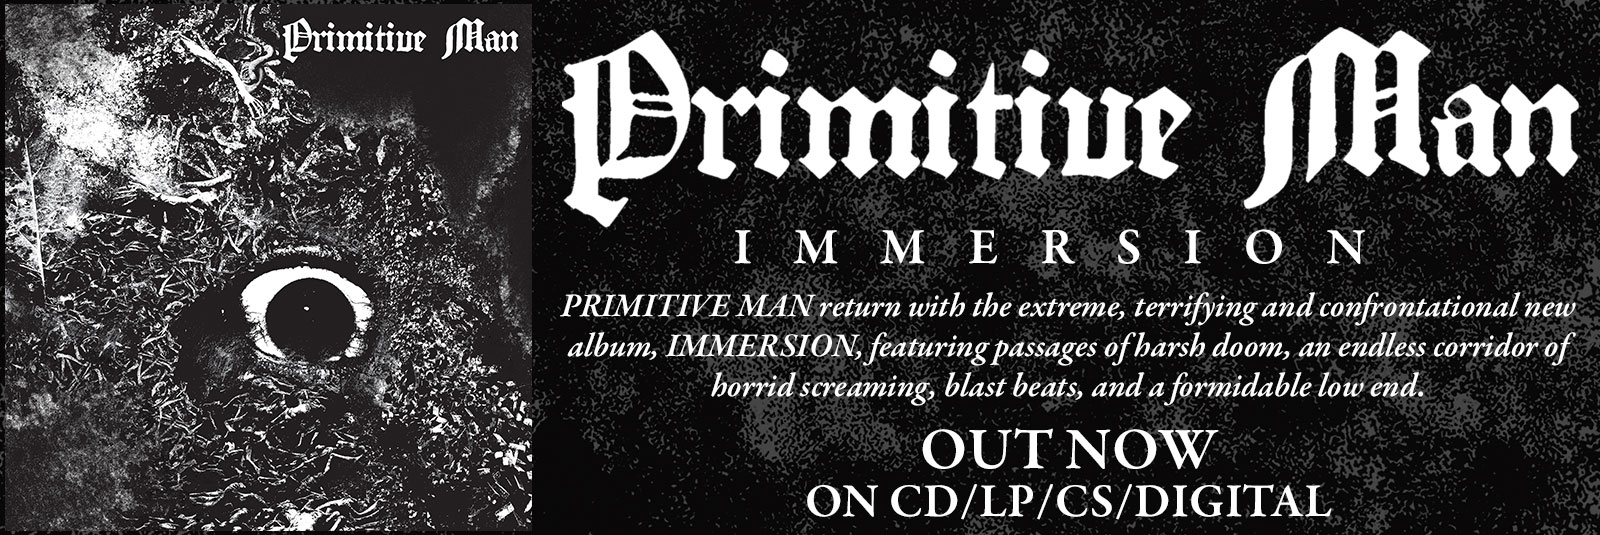 primitive-man-immersion-death-doom-metal-relapse